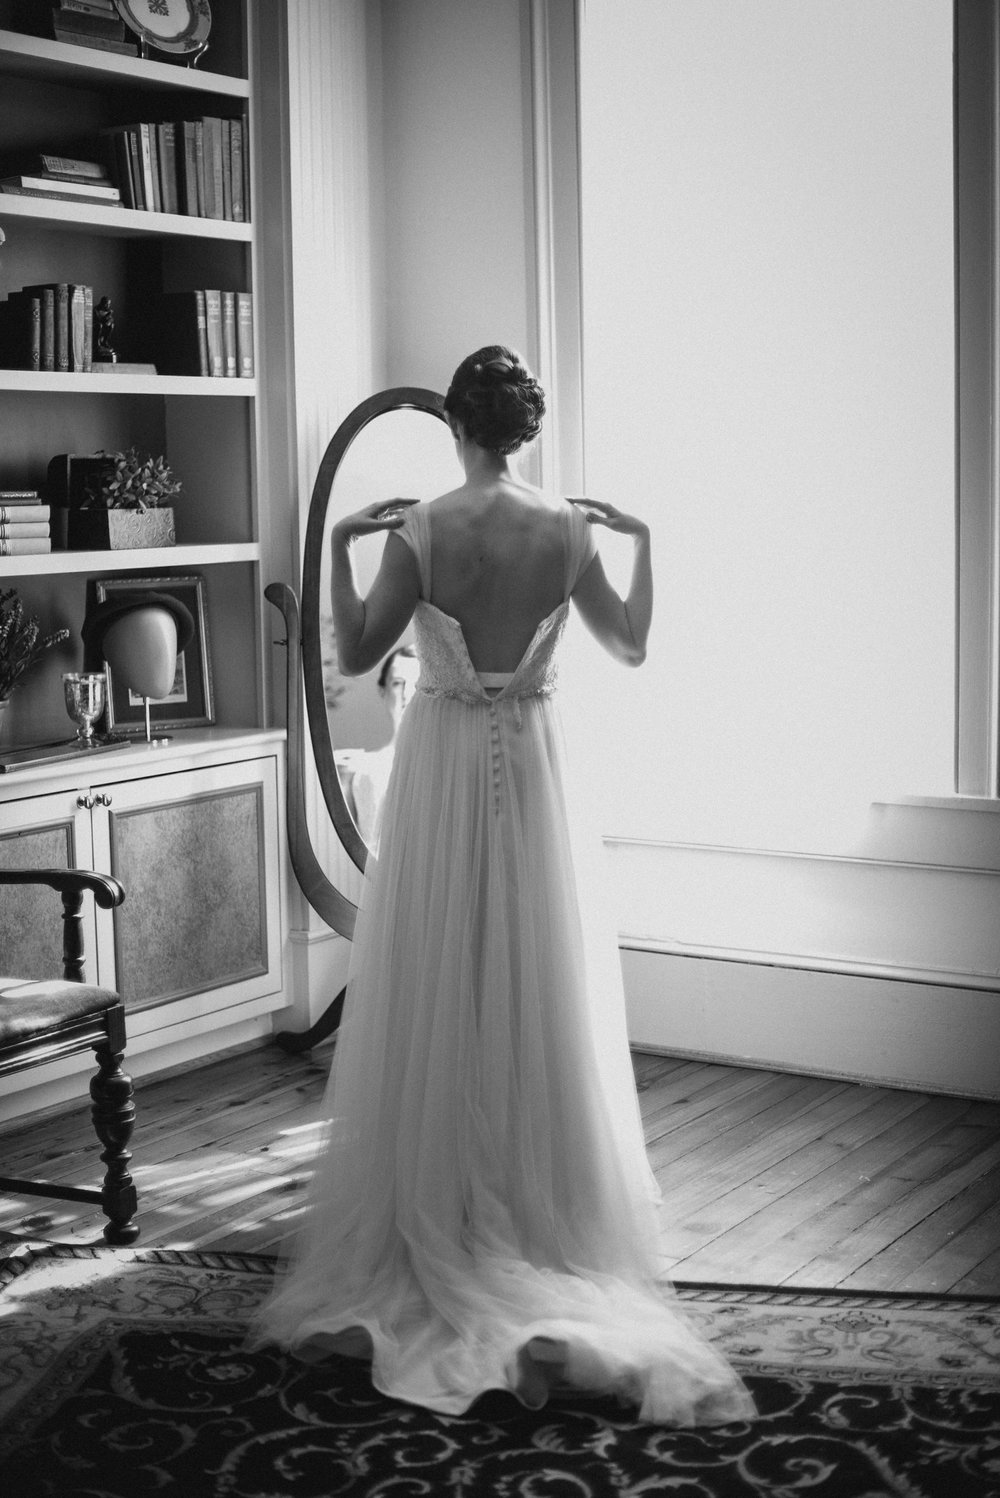 Bride getting dressed in black and white